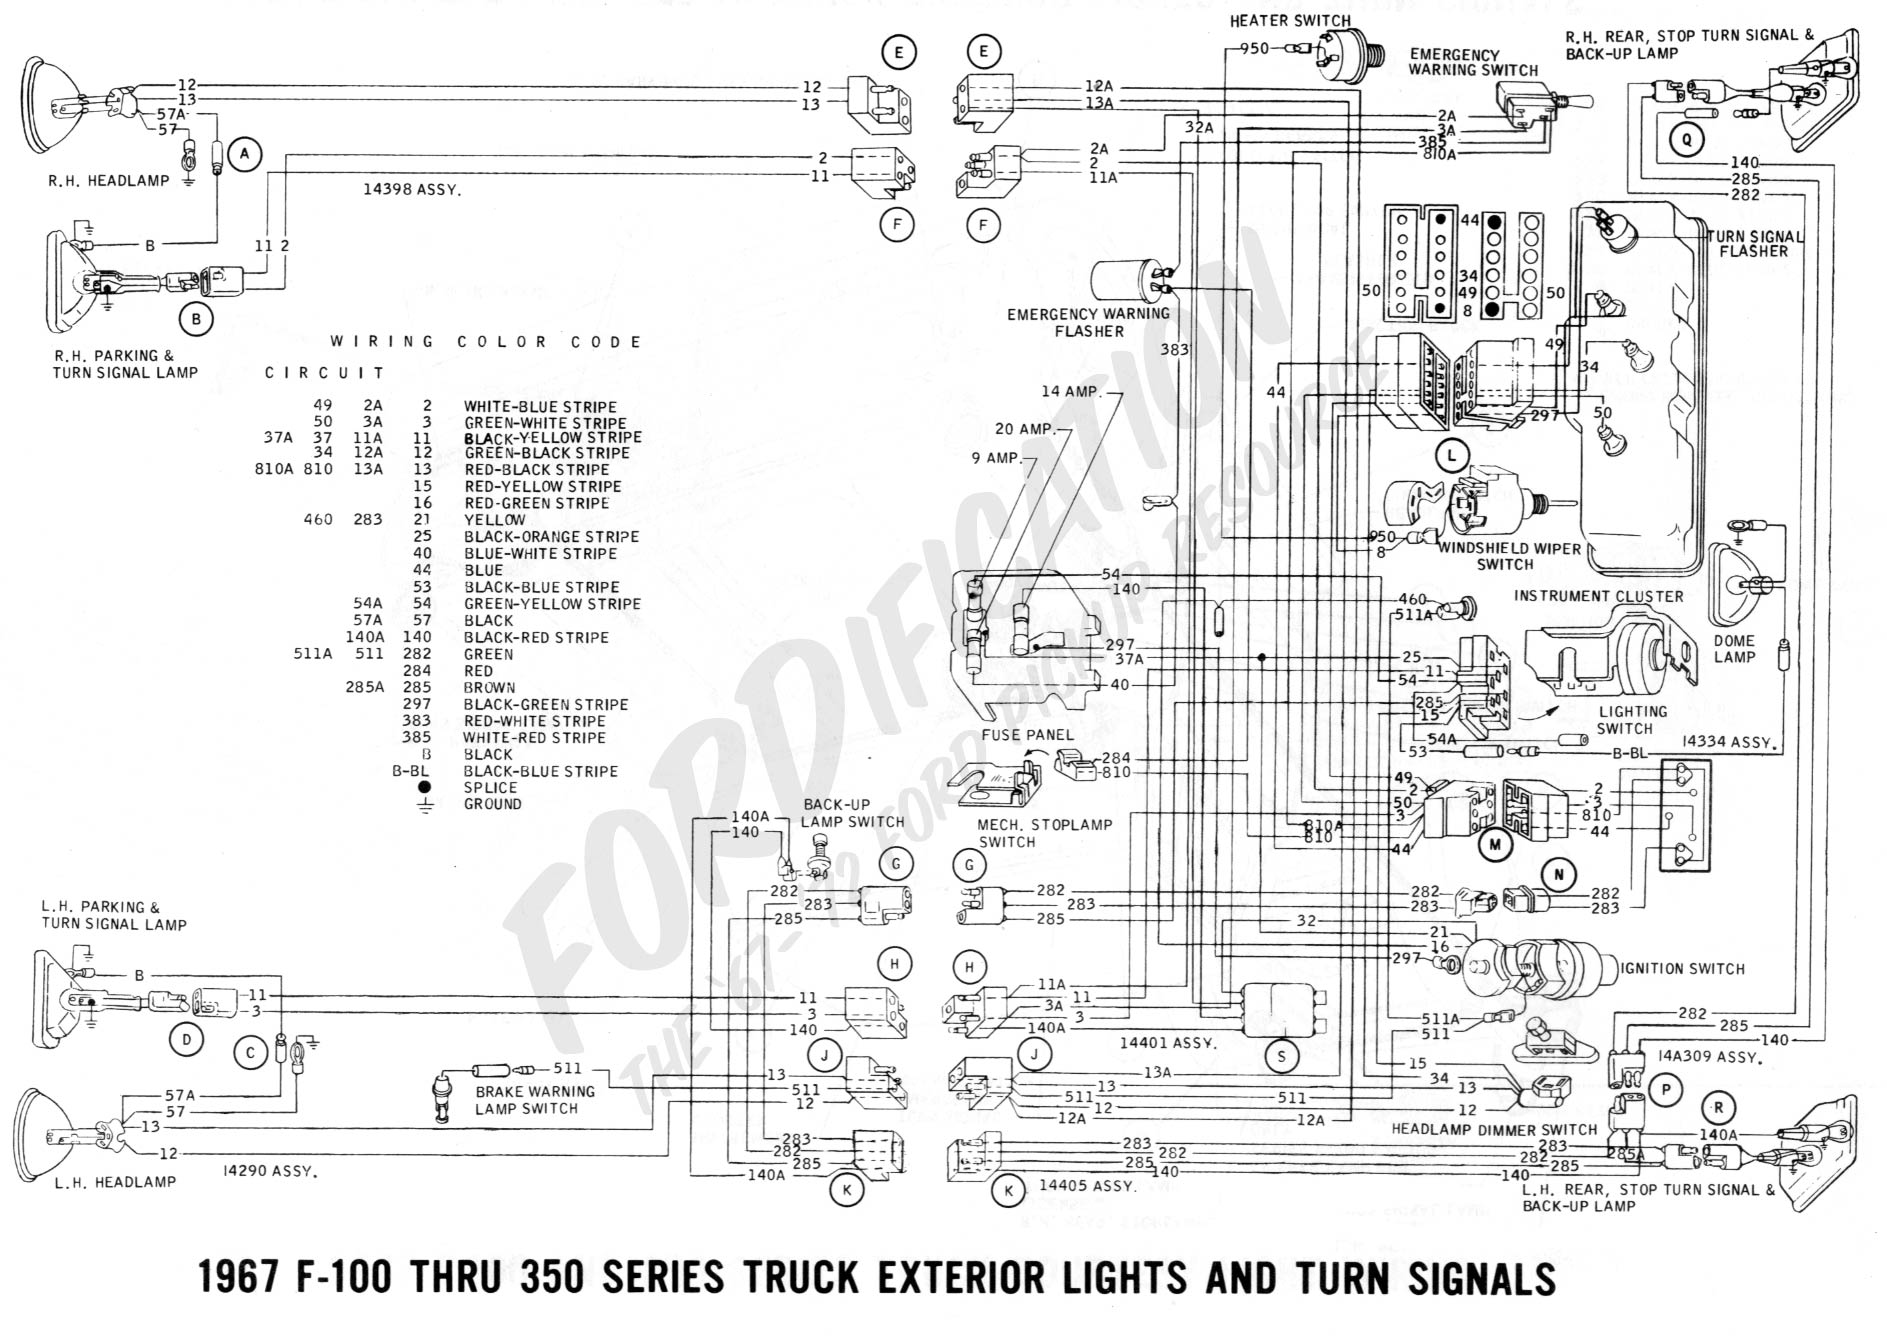 ford truck technical drawings and schematics - section h - wiring ... 1967 ford f100 wiring diagram 1969 ford ignition switch wiring diagram fordification.com